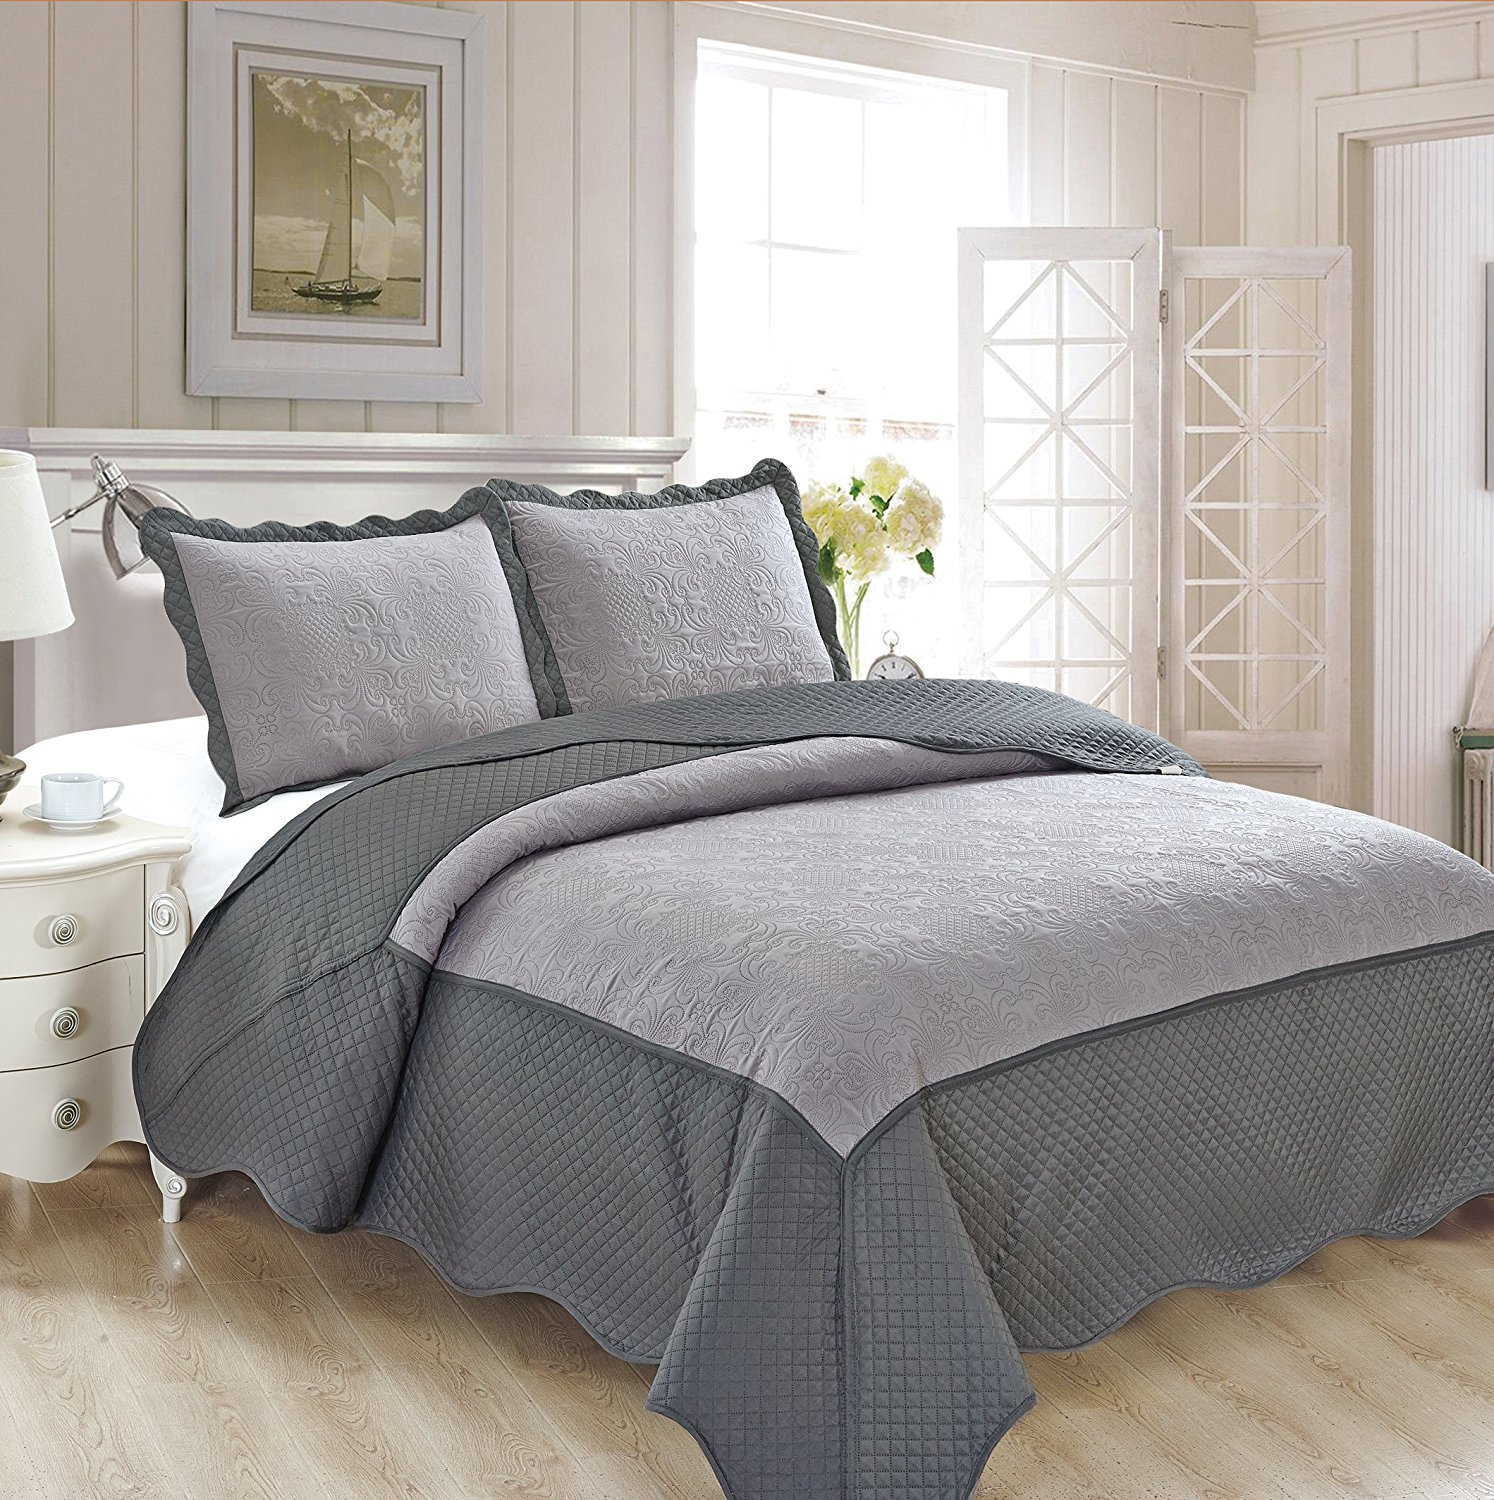 Fancy Collection 3pc Luxury Bedspread Coverlet Embossed Bed Cover Solid Tow Tune Gray... by Fancy Linen